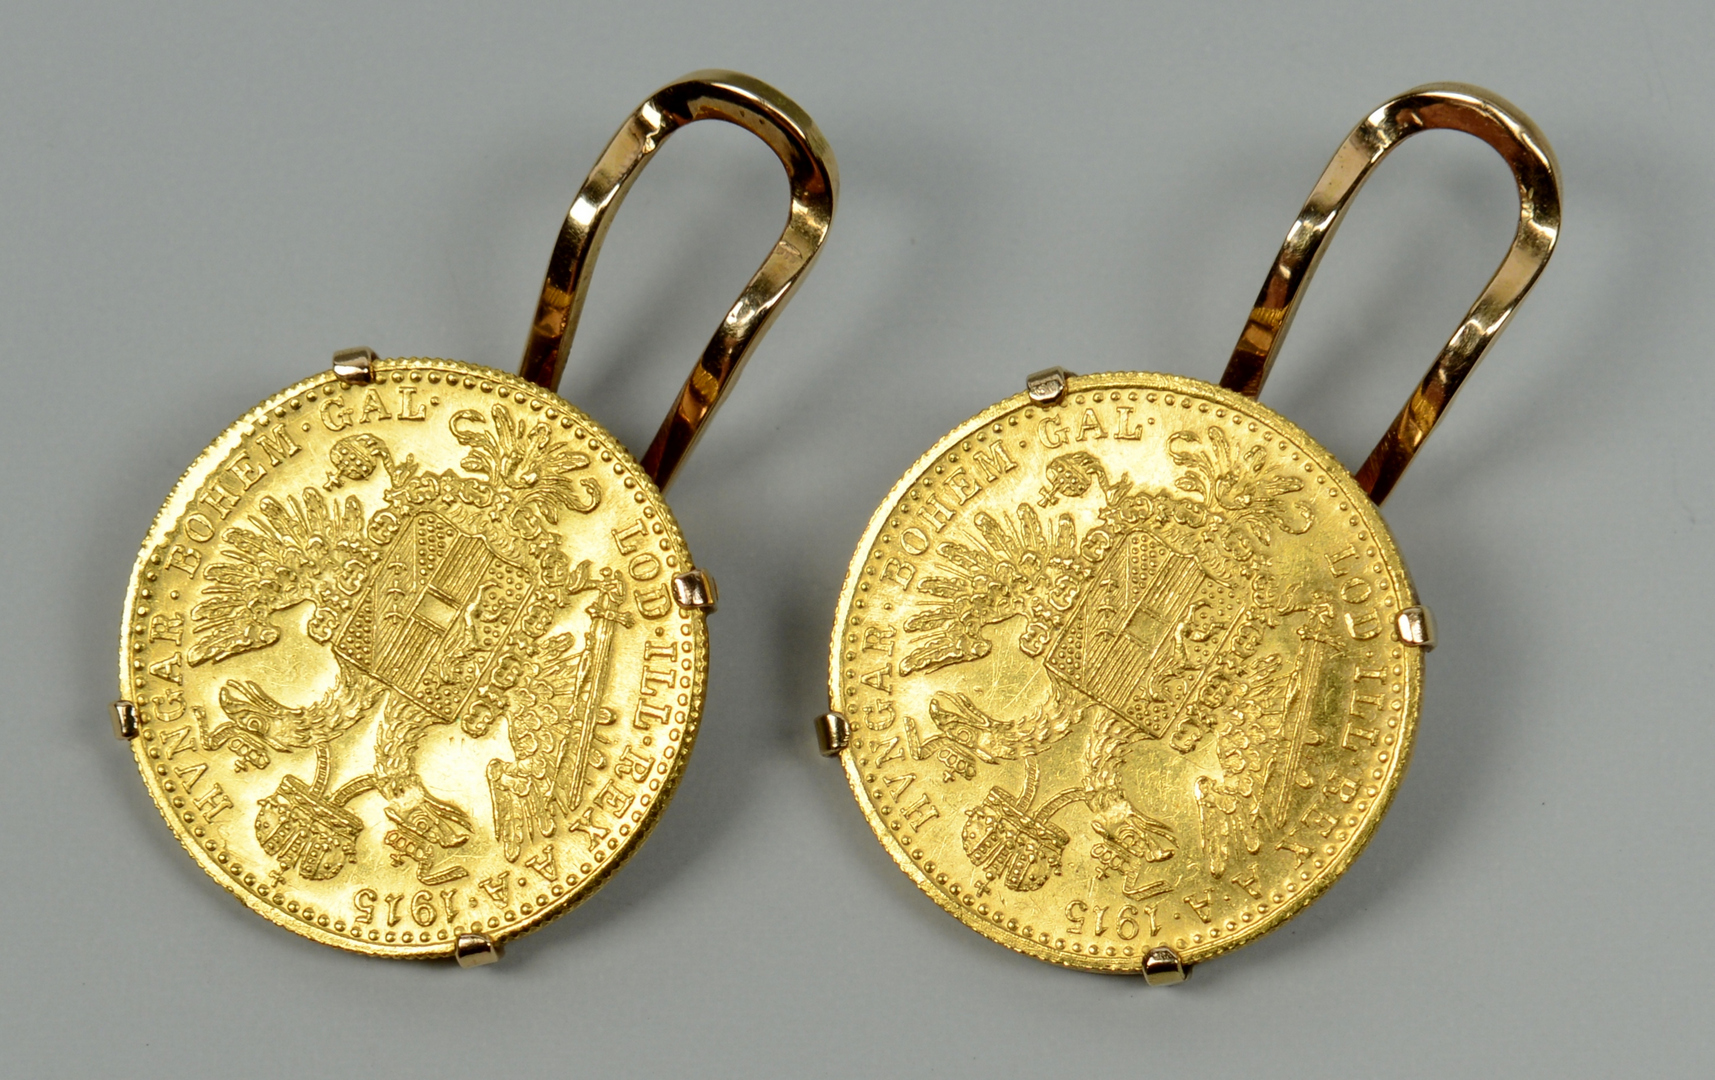 Lot 3088071 3 1915 Austrian Ducat Coin Jewelry Items